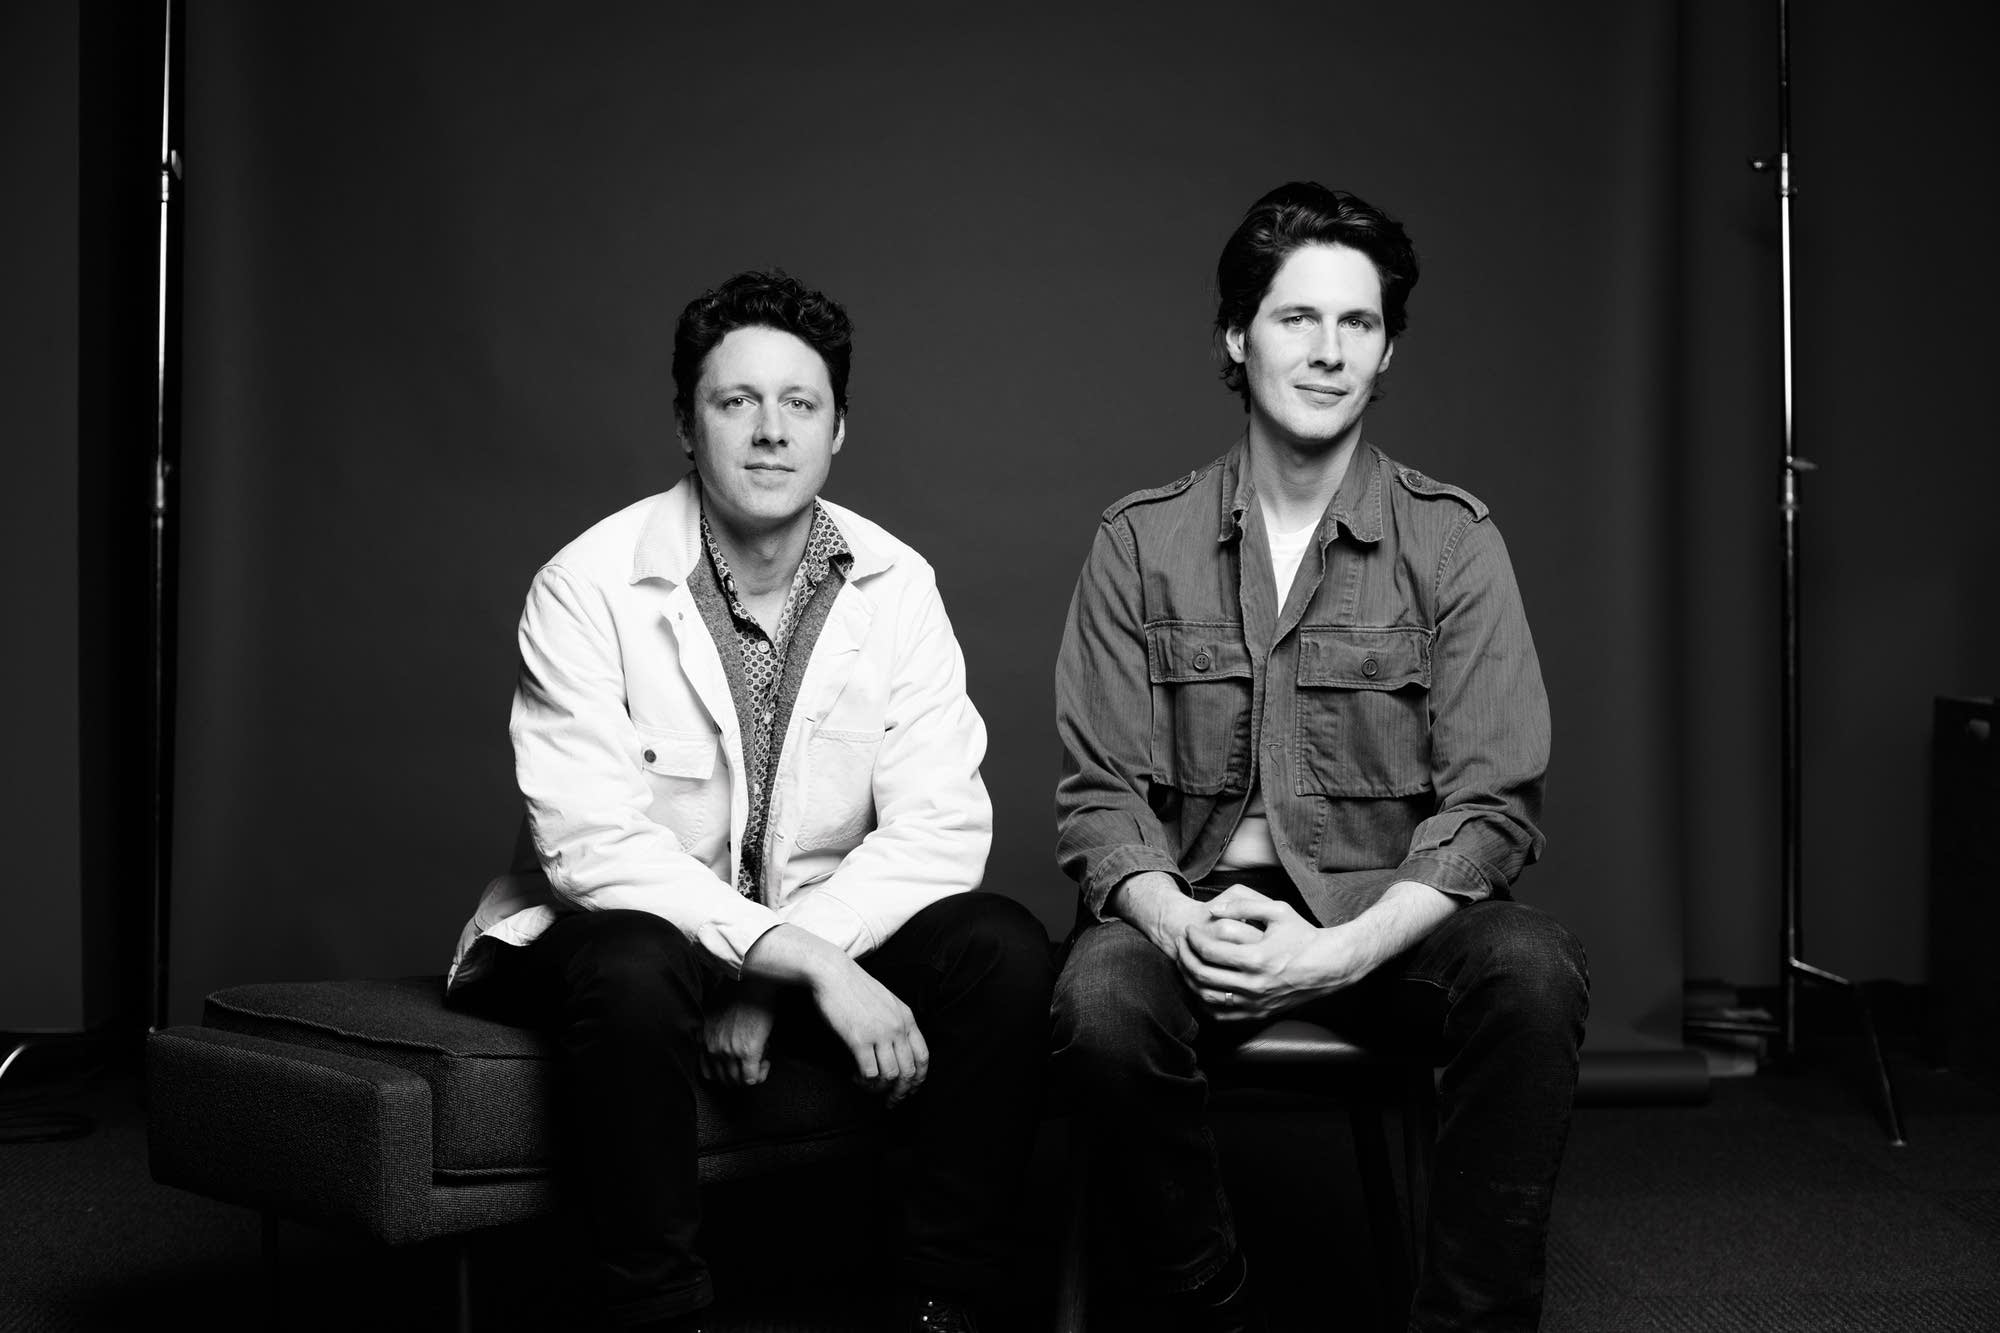 Page Burkum and Jack Torrey of The Cactus Blossoms - portrait